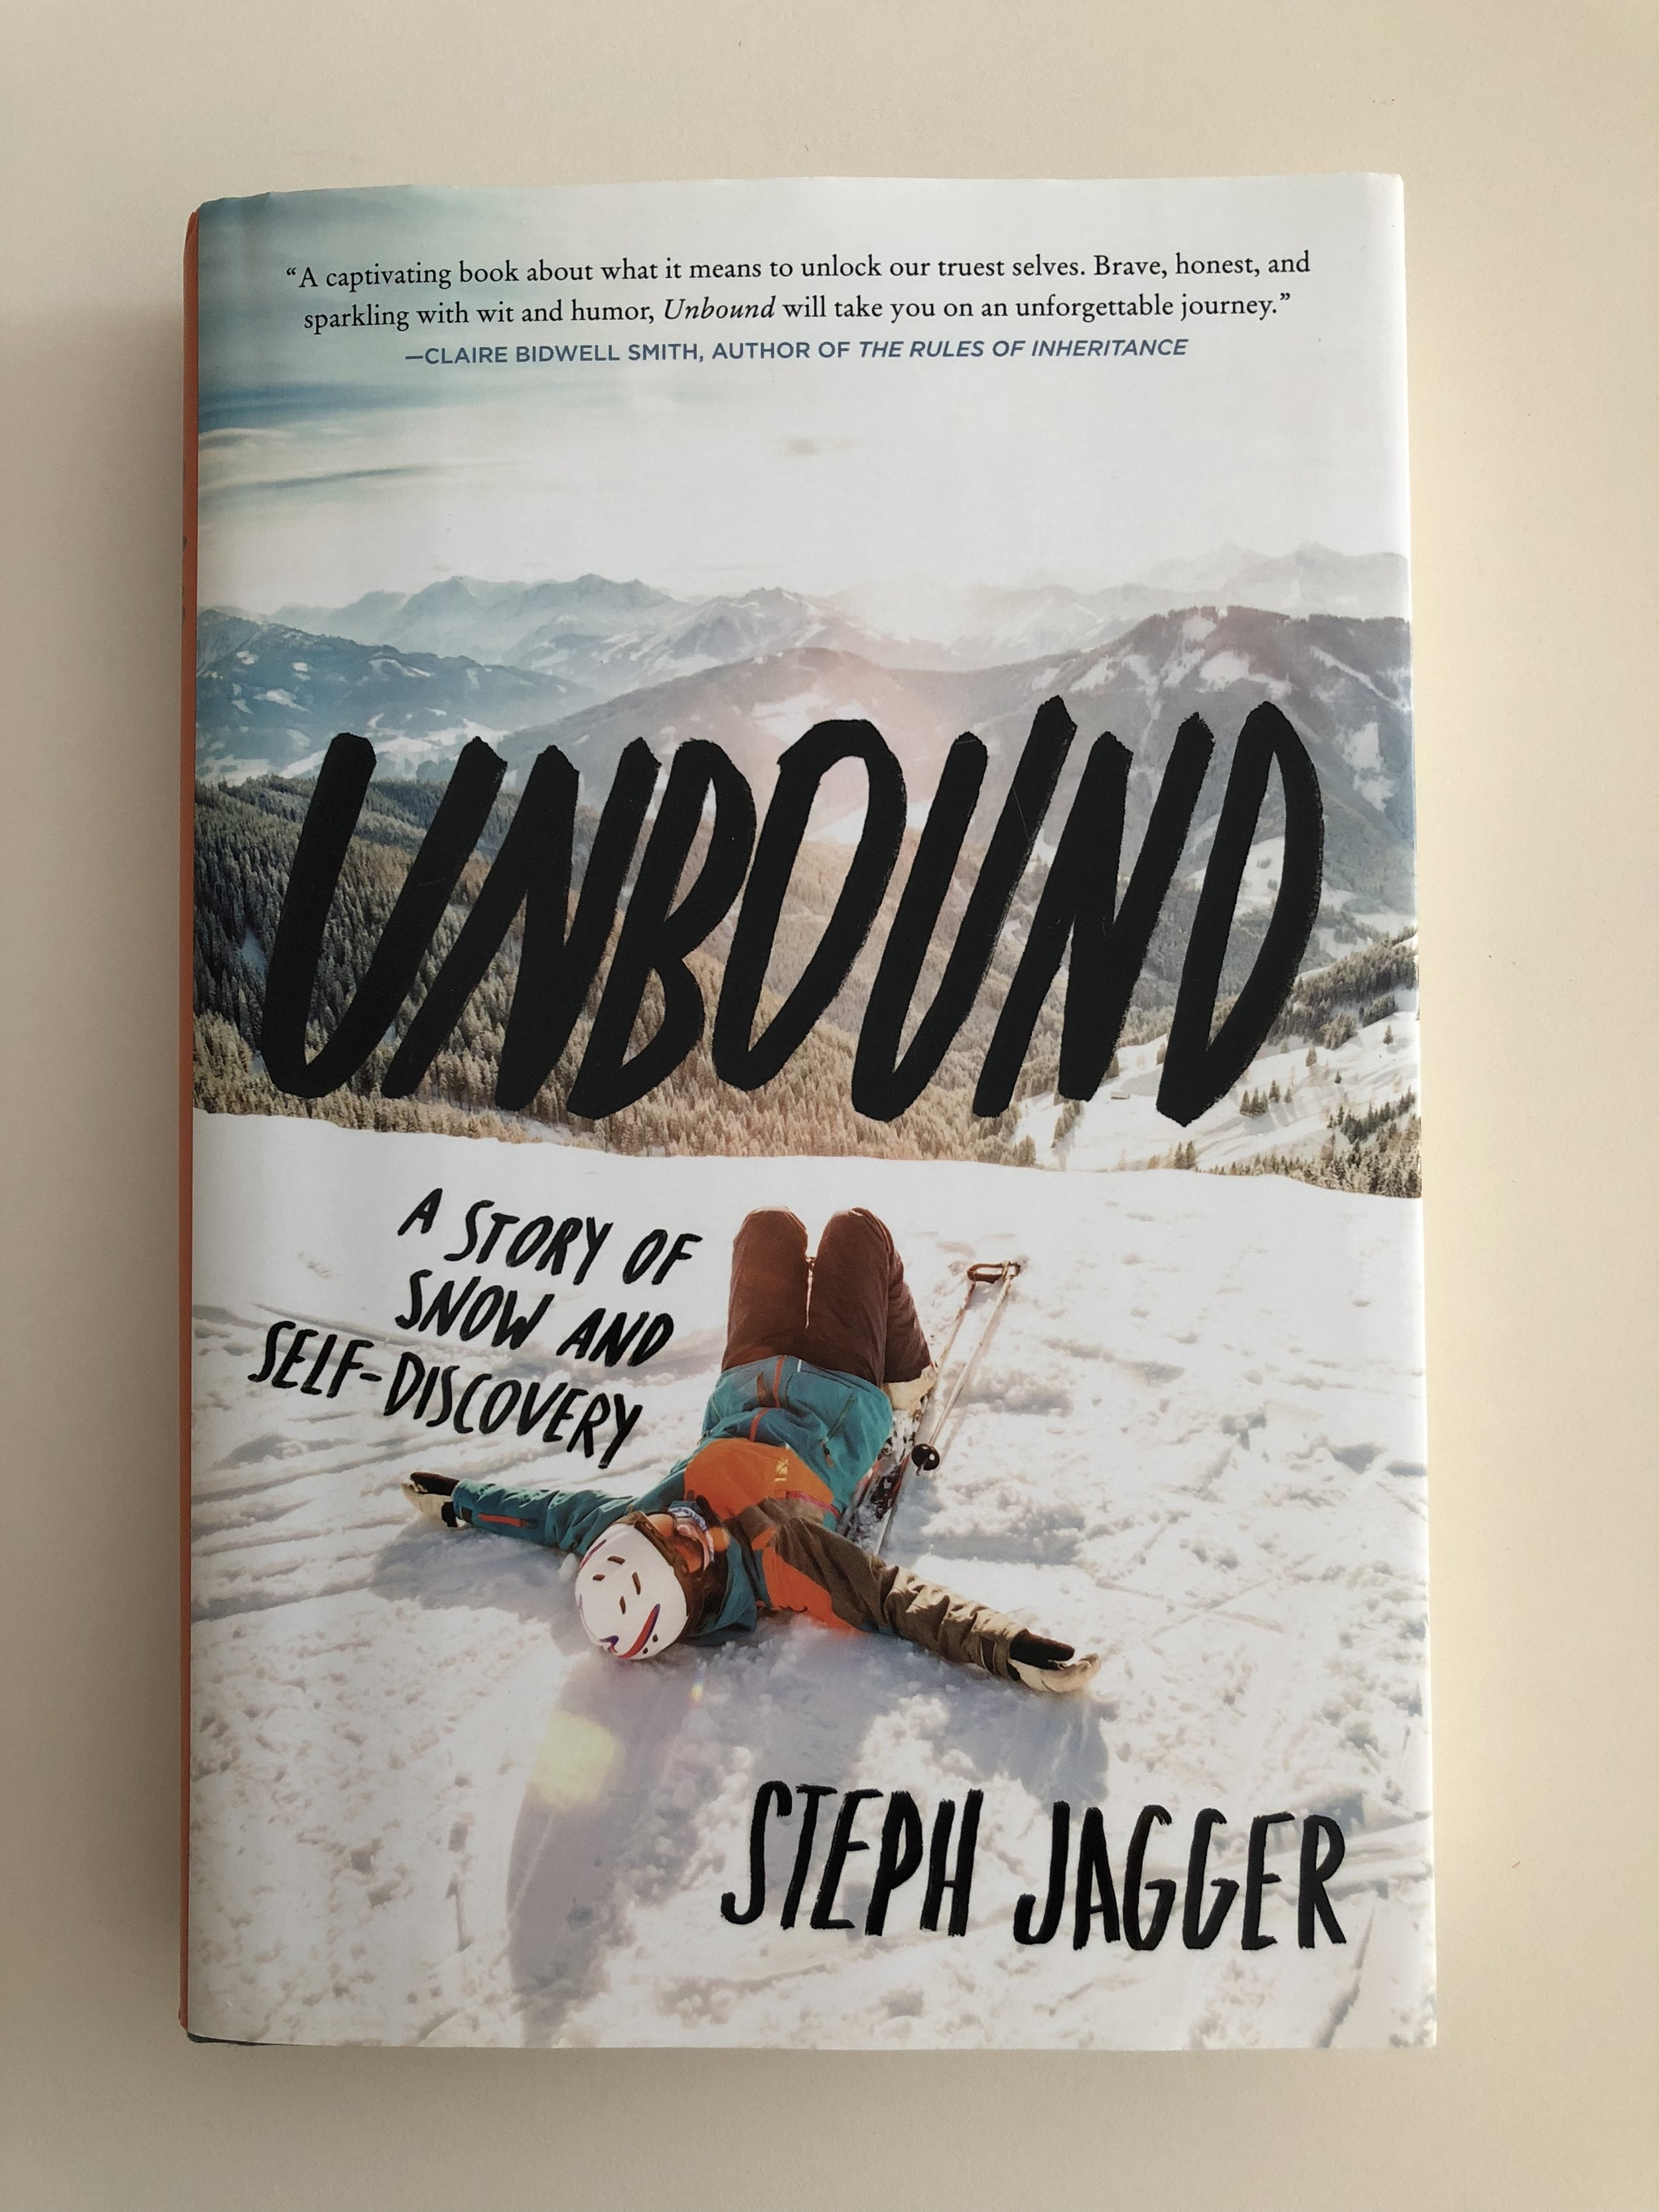 Unbound by Steph Jagger